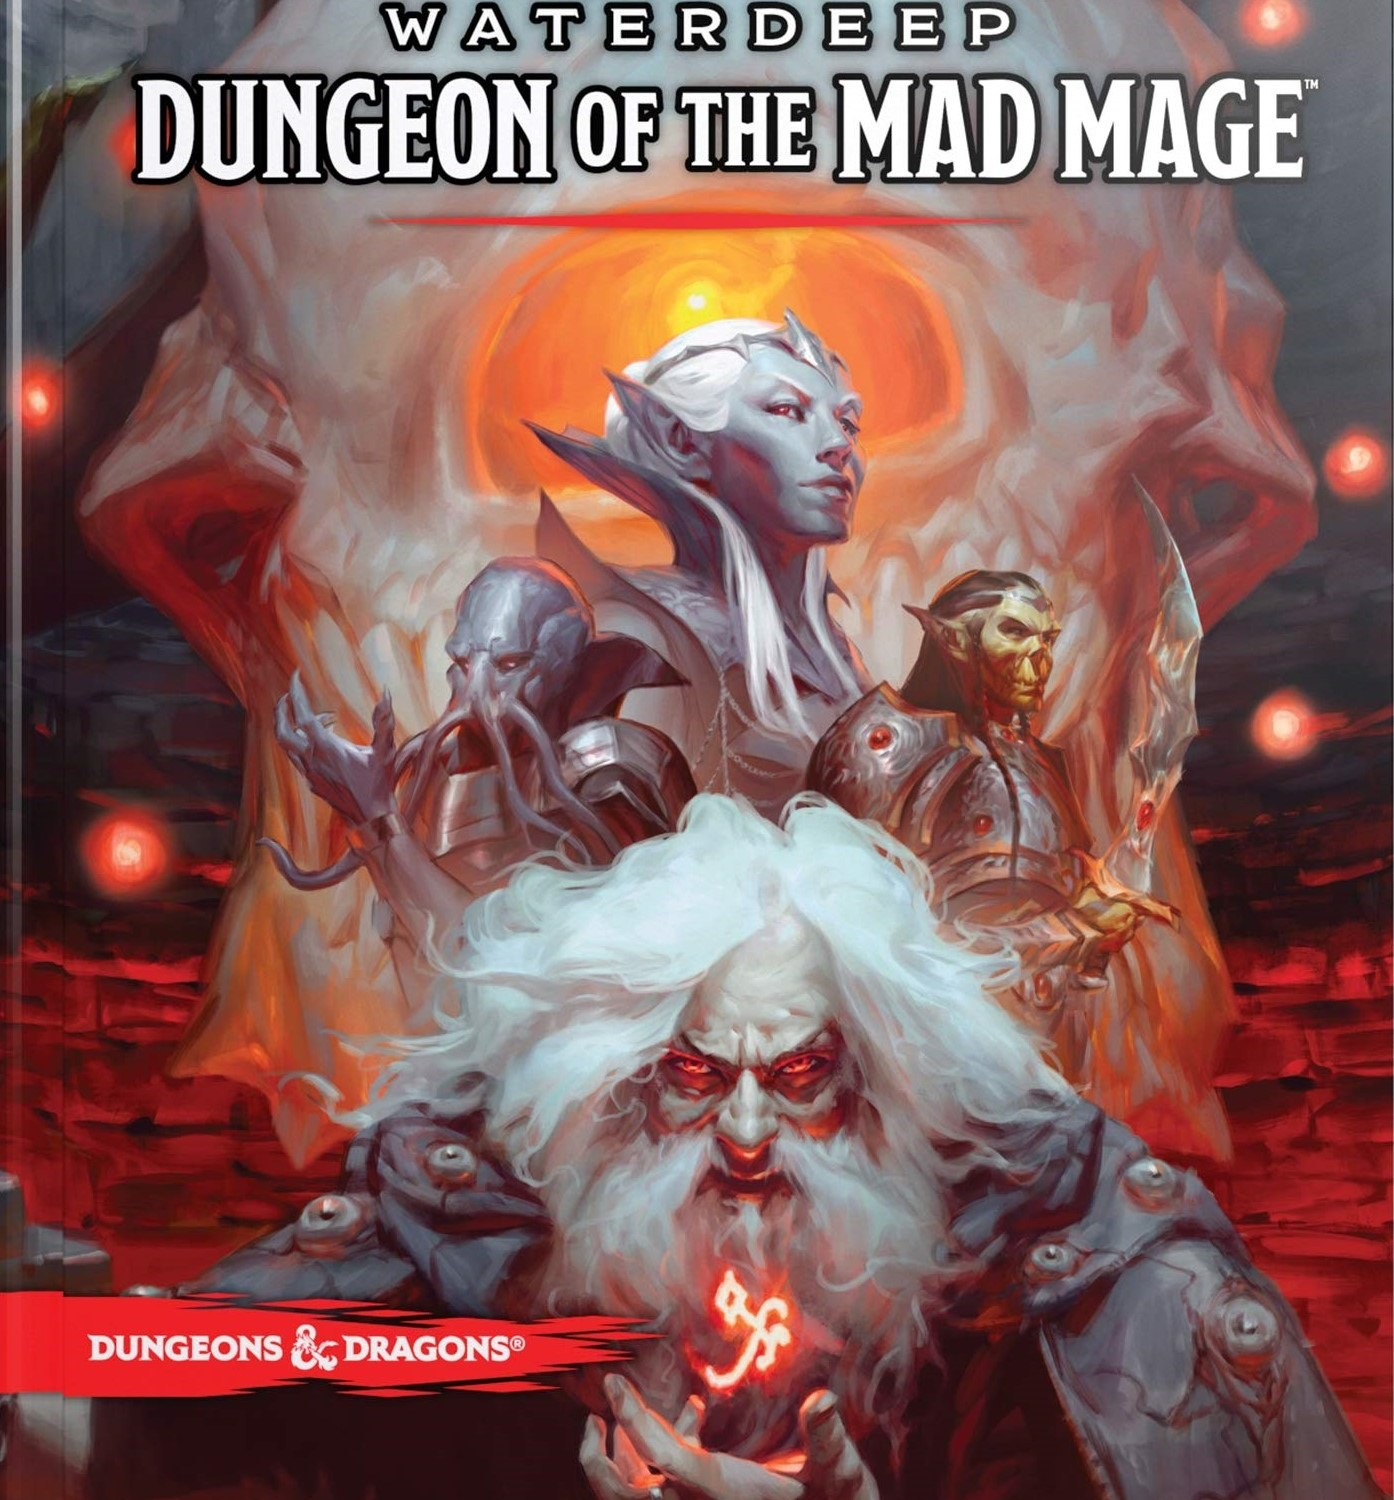 Review – Waterdeep: Dungeon of the Mad Mage (Dungeons